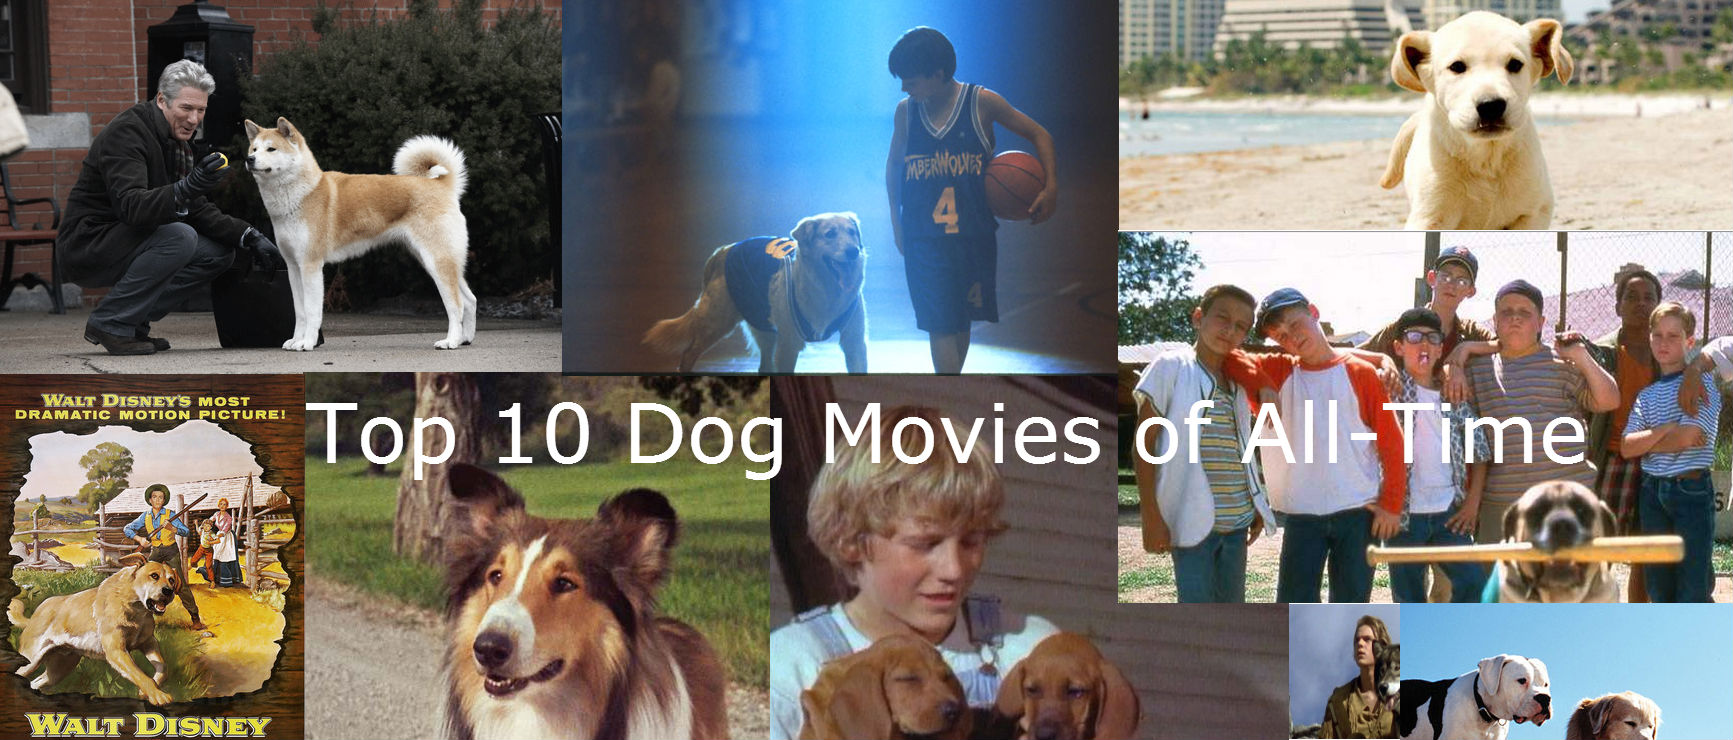 Top Dog Movies